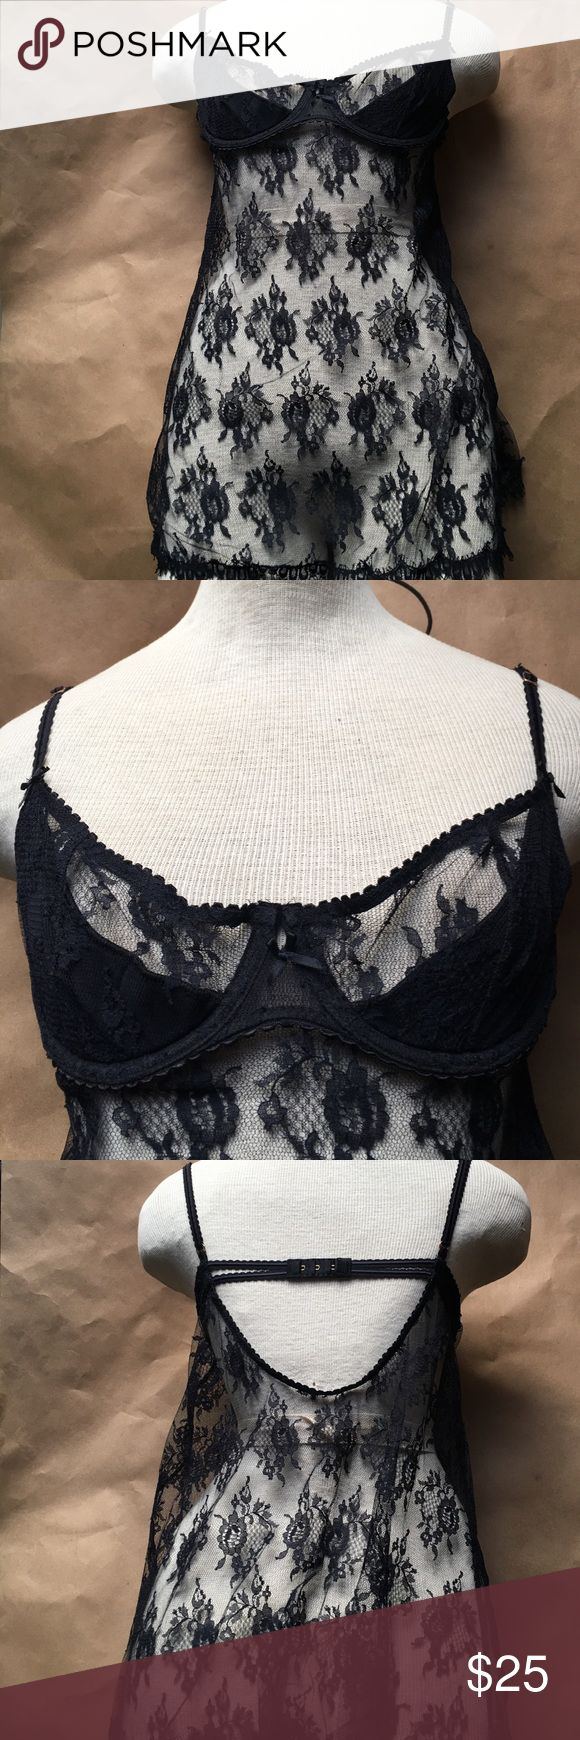 Very Sexy Victoria SECERT LACE LINGERIE 36b New, LACE BLK. Sheer. Underwire cups and little padding half covered top. Size 36B Victoria's Secret Intimates & Sleepwear Chemises & Slips